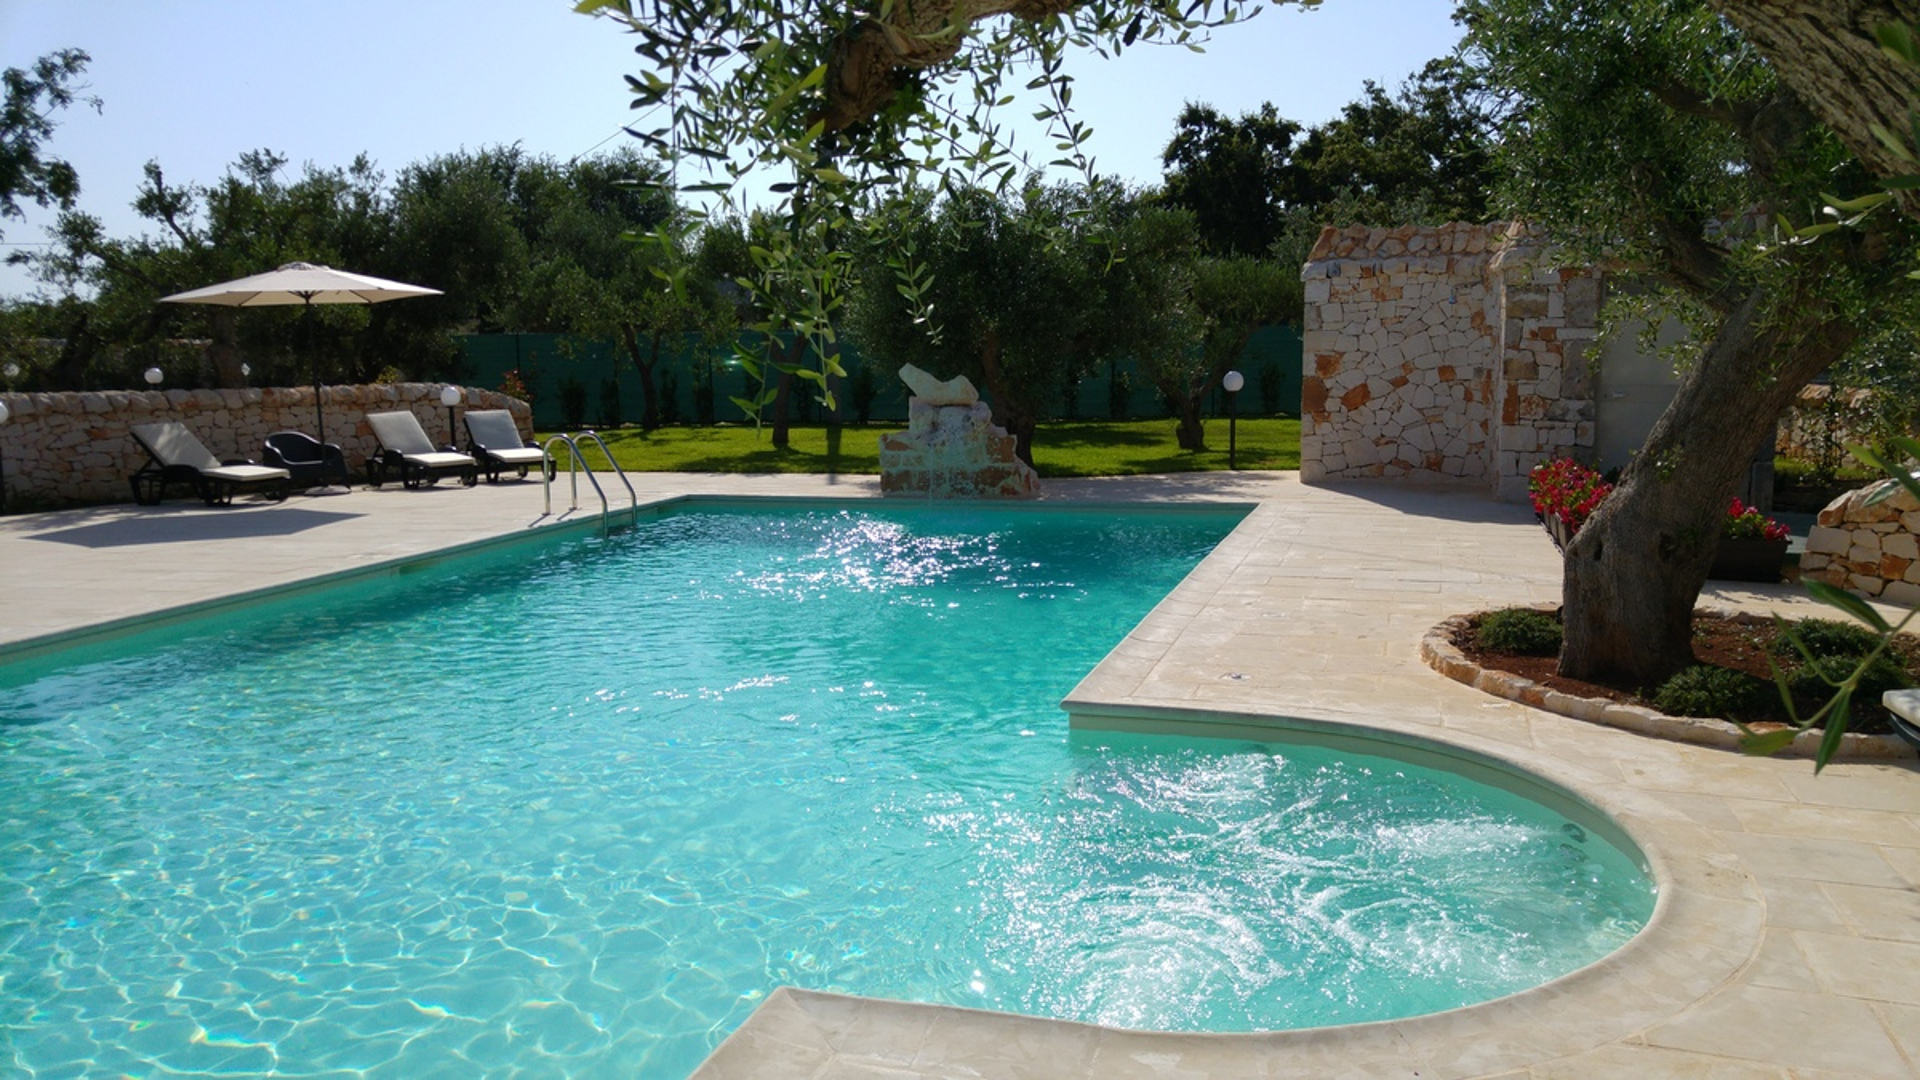 The pool of Almapetra Trulli Resort